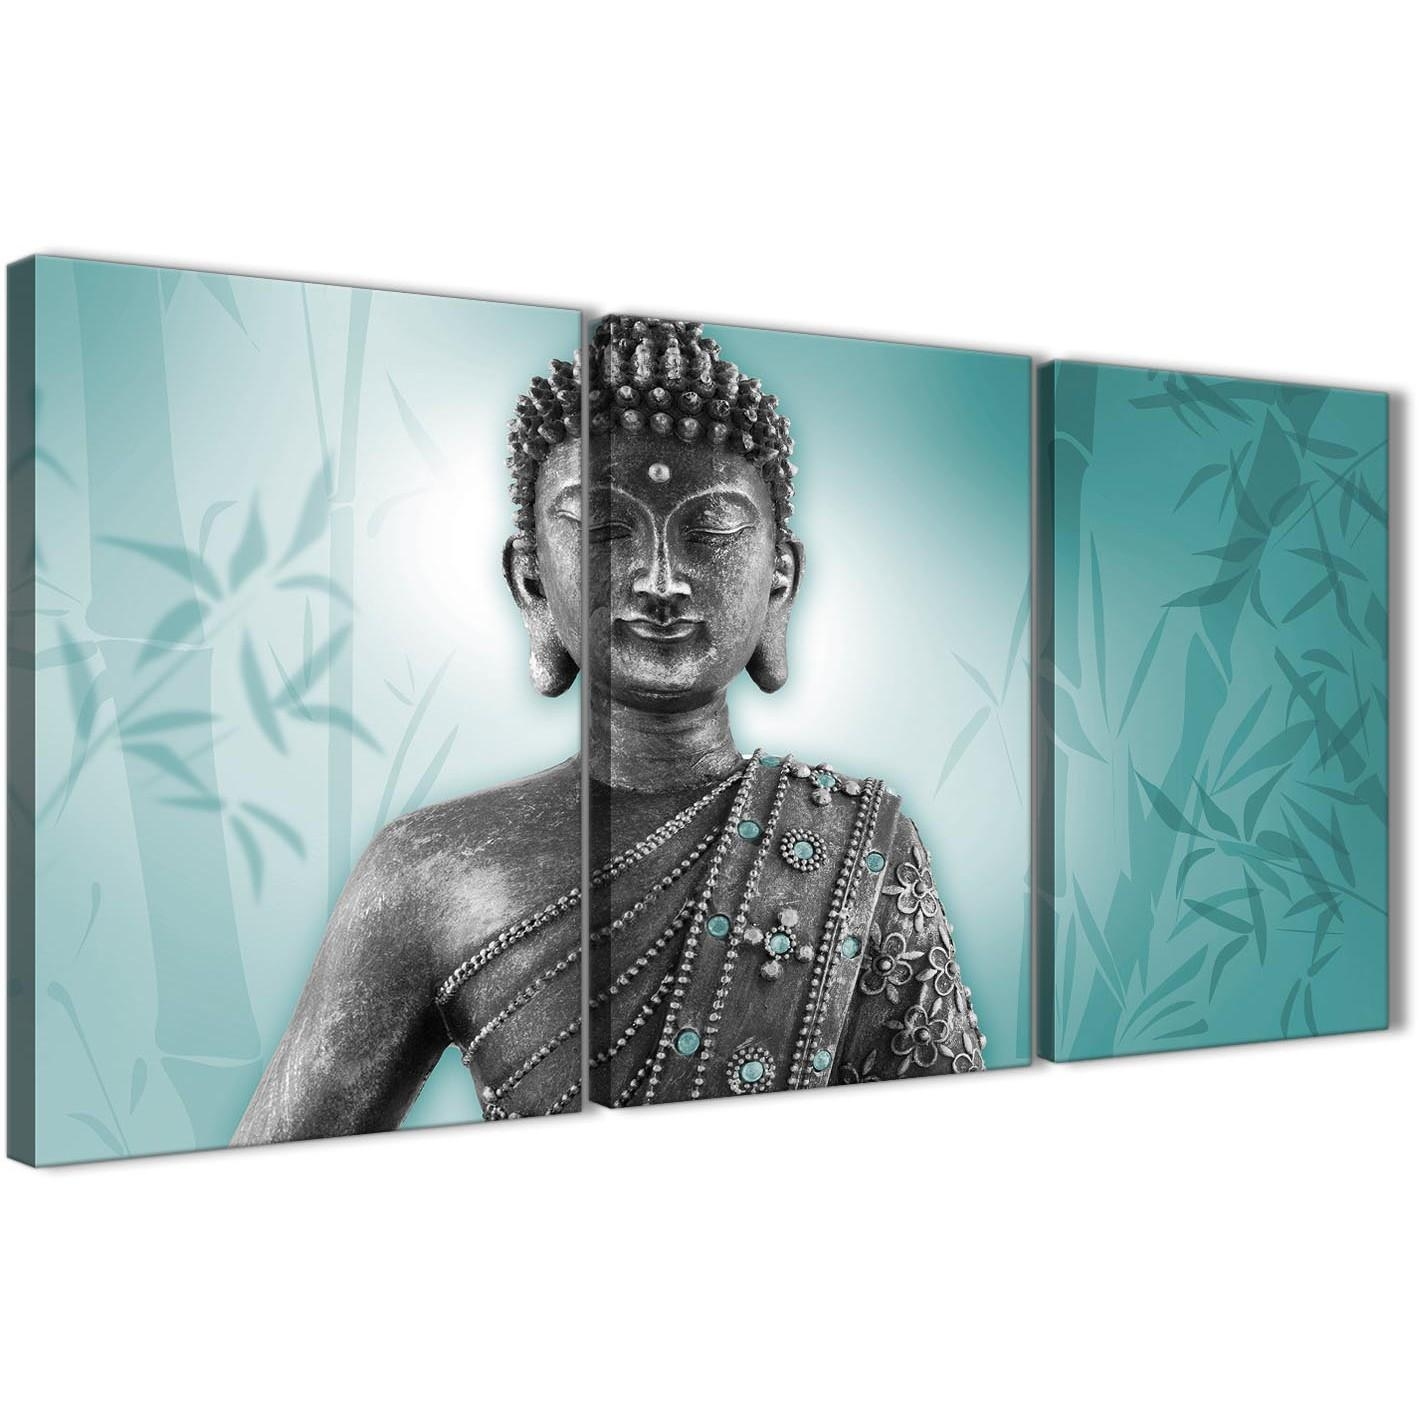 Teal And Grey Silver Canvas Art Prints Of Buddha – Split Set Of 3 Intended For Silver Buddha Wall Art (Image 18 of 20)